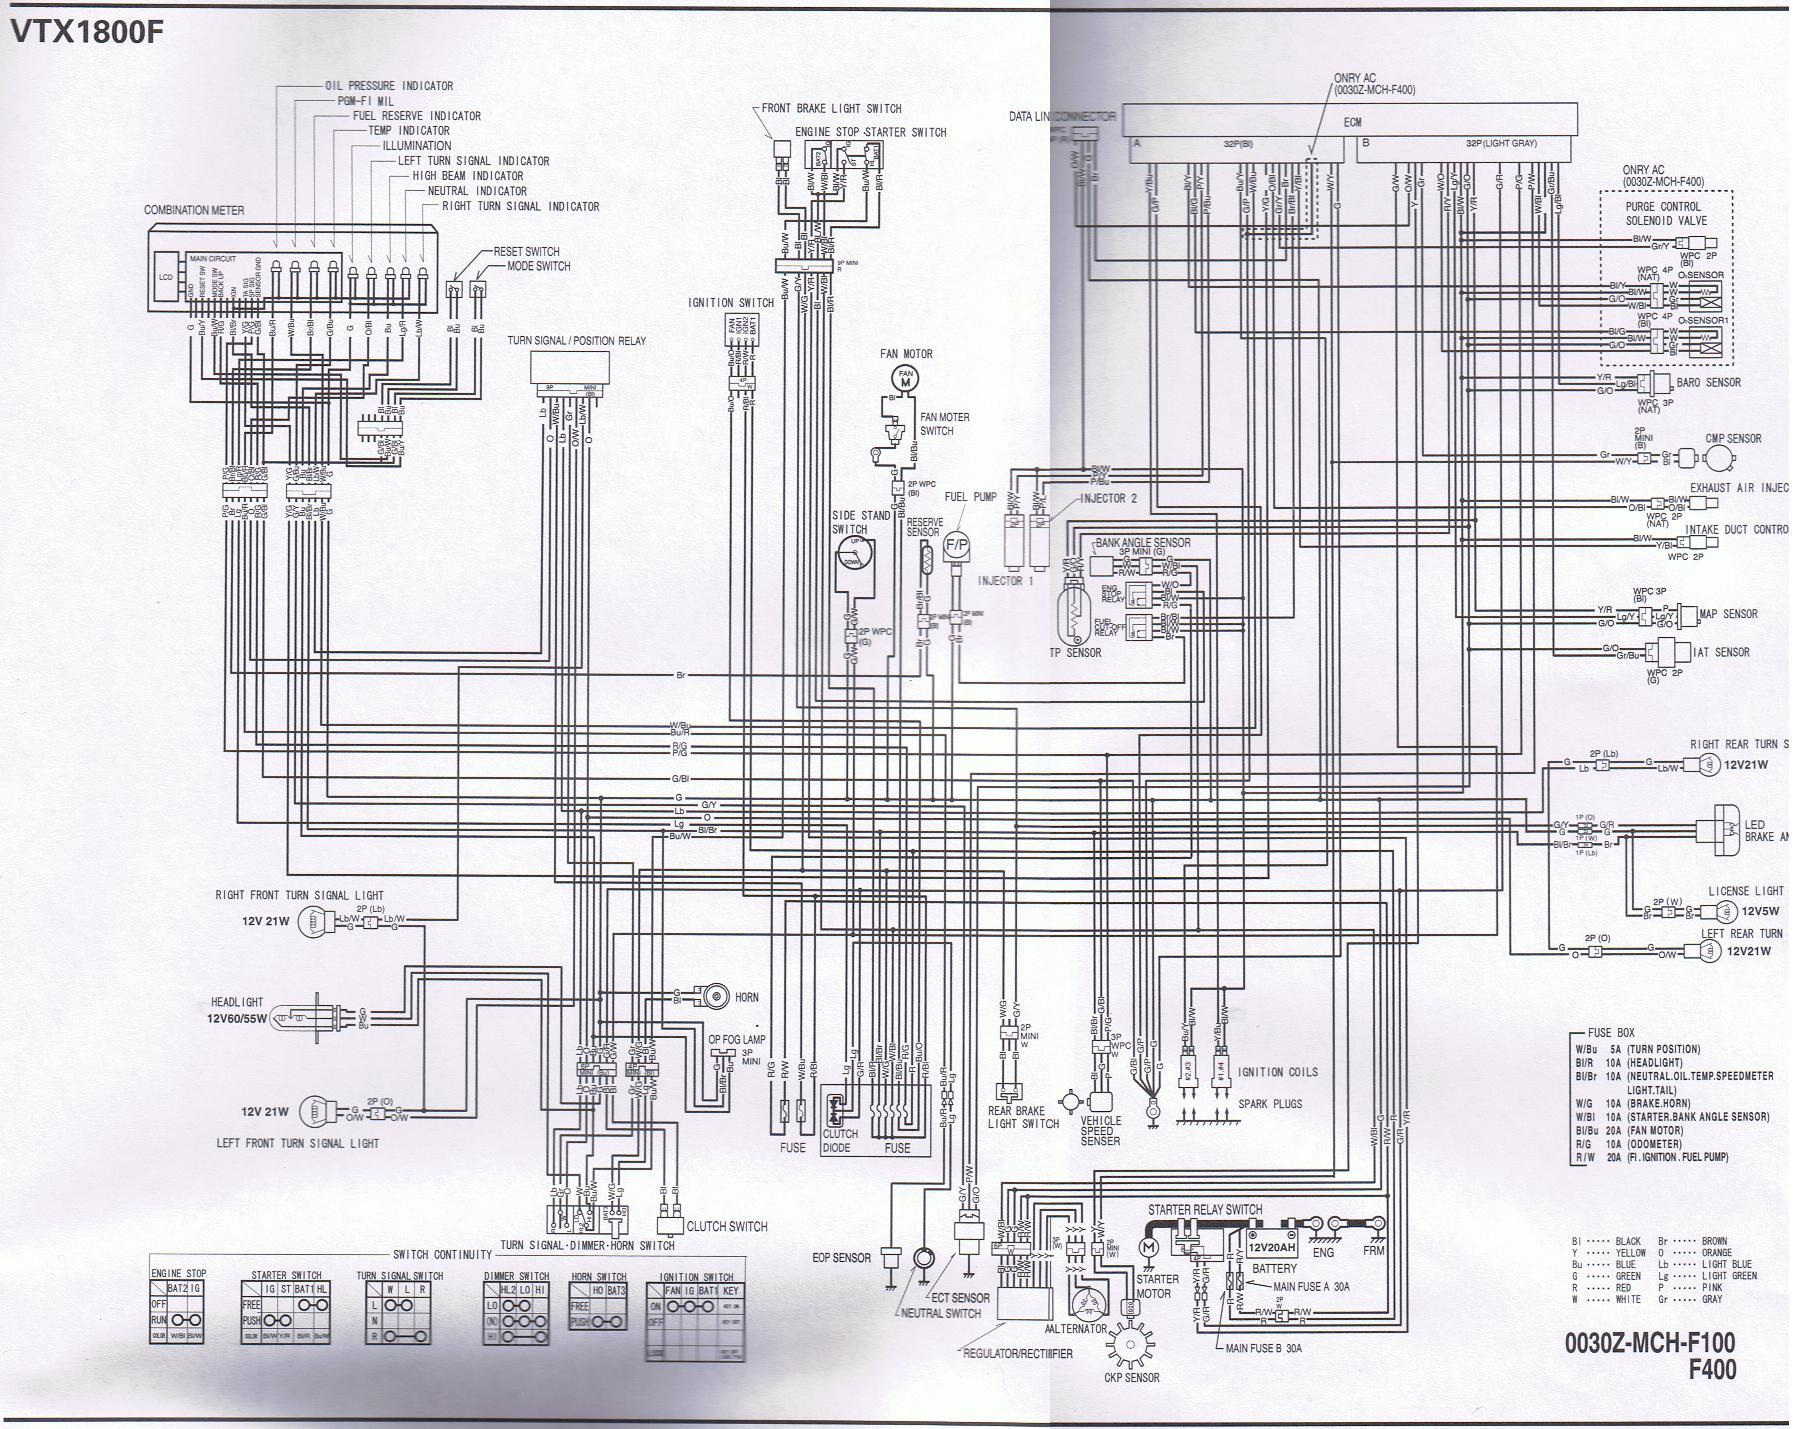 05+_VTX1800_F_schematic motorcycle wire schematics bareass choppers motorcycle tech pages wiring diagram for victory motorcycles at bayanpartner.co